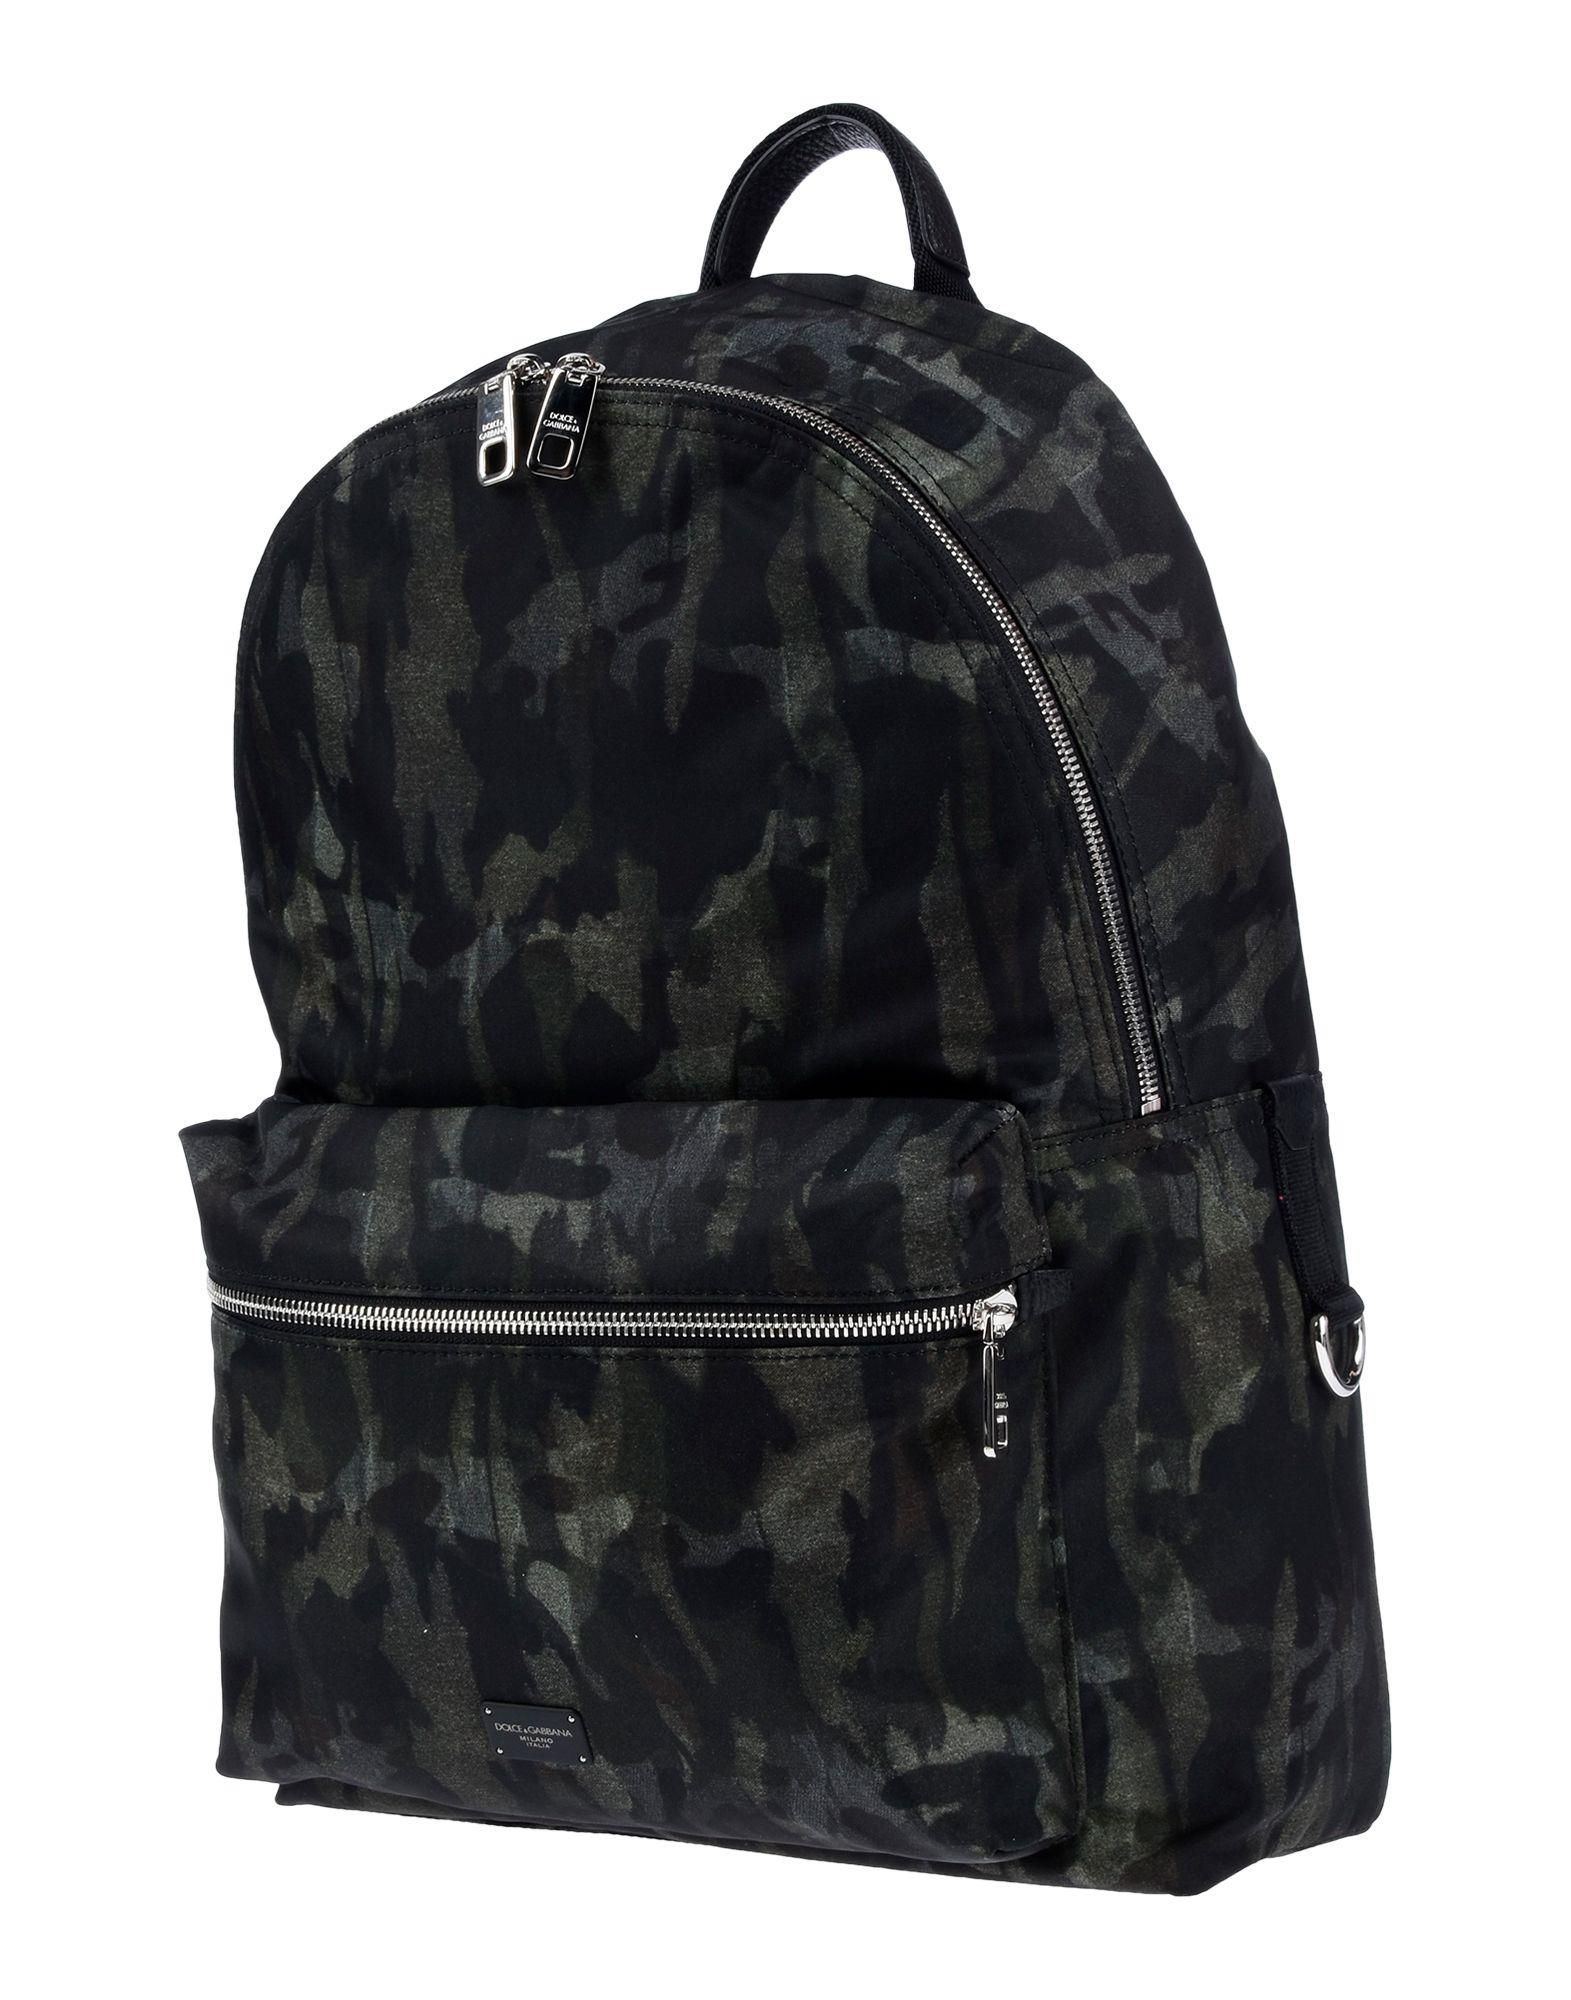 614c788b700d Dolce   Gabbana Backpacks   Bum Bags in Green for Men - Save 53% - Lyst